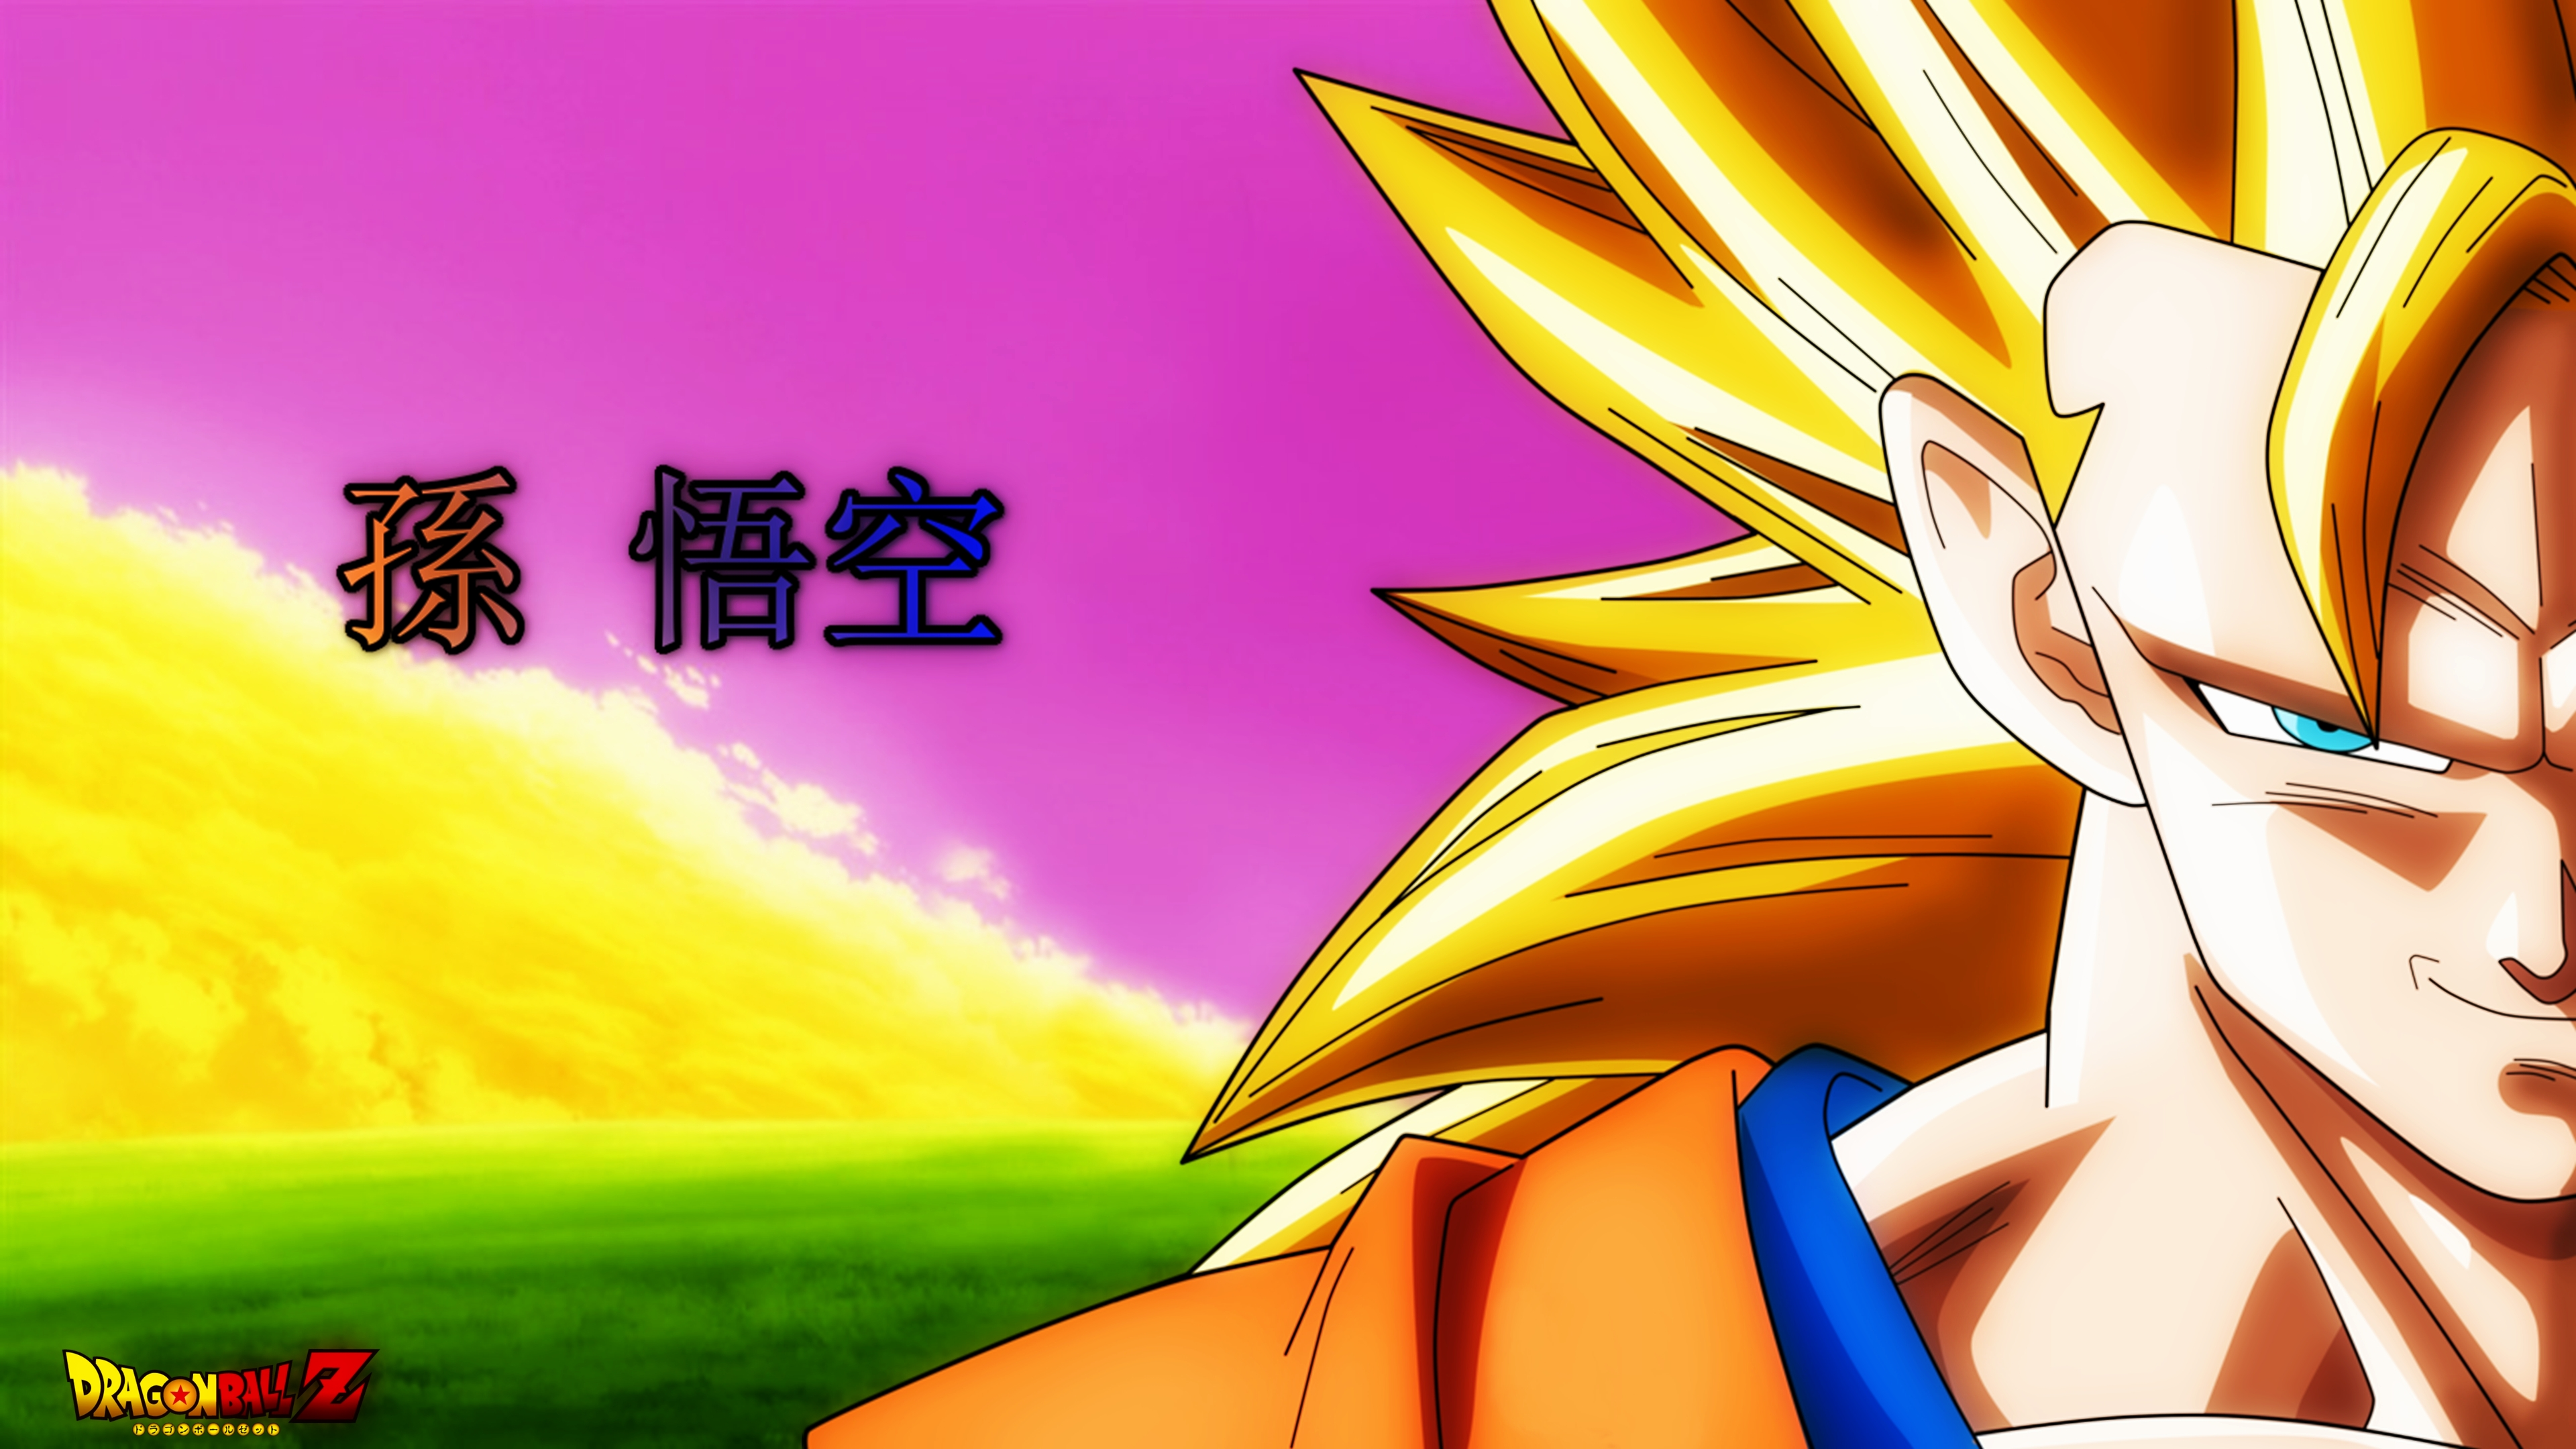 Dragon Ball Z Goku Super Saiyan 3 Wallpaper Imgkid 3840x2160